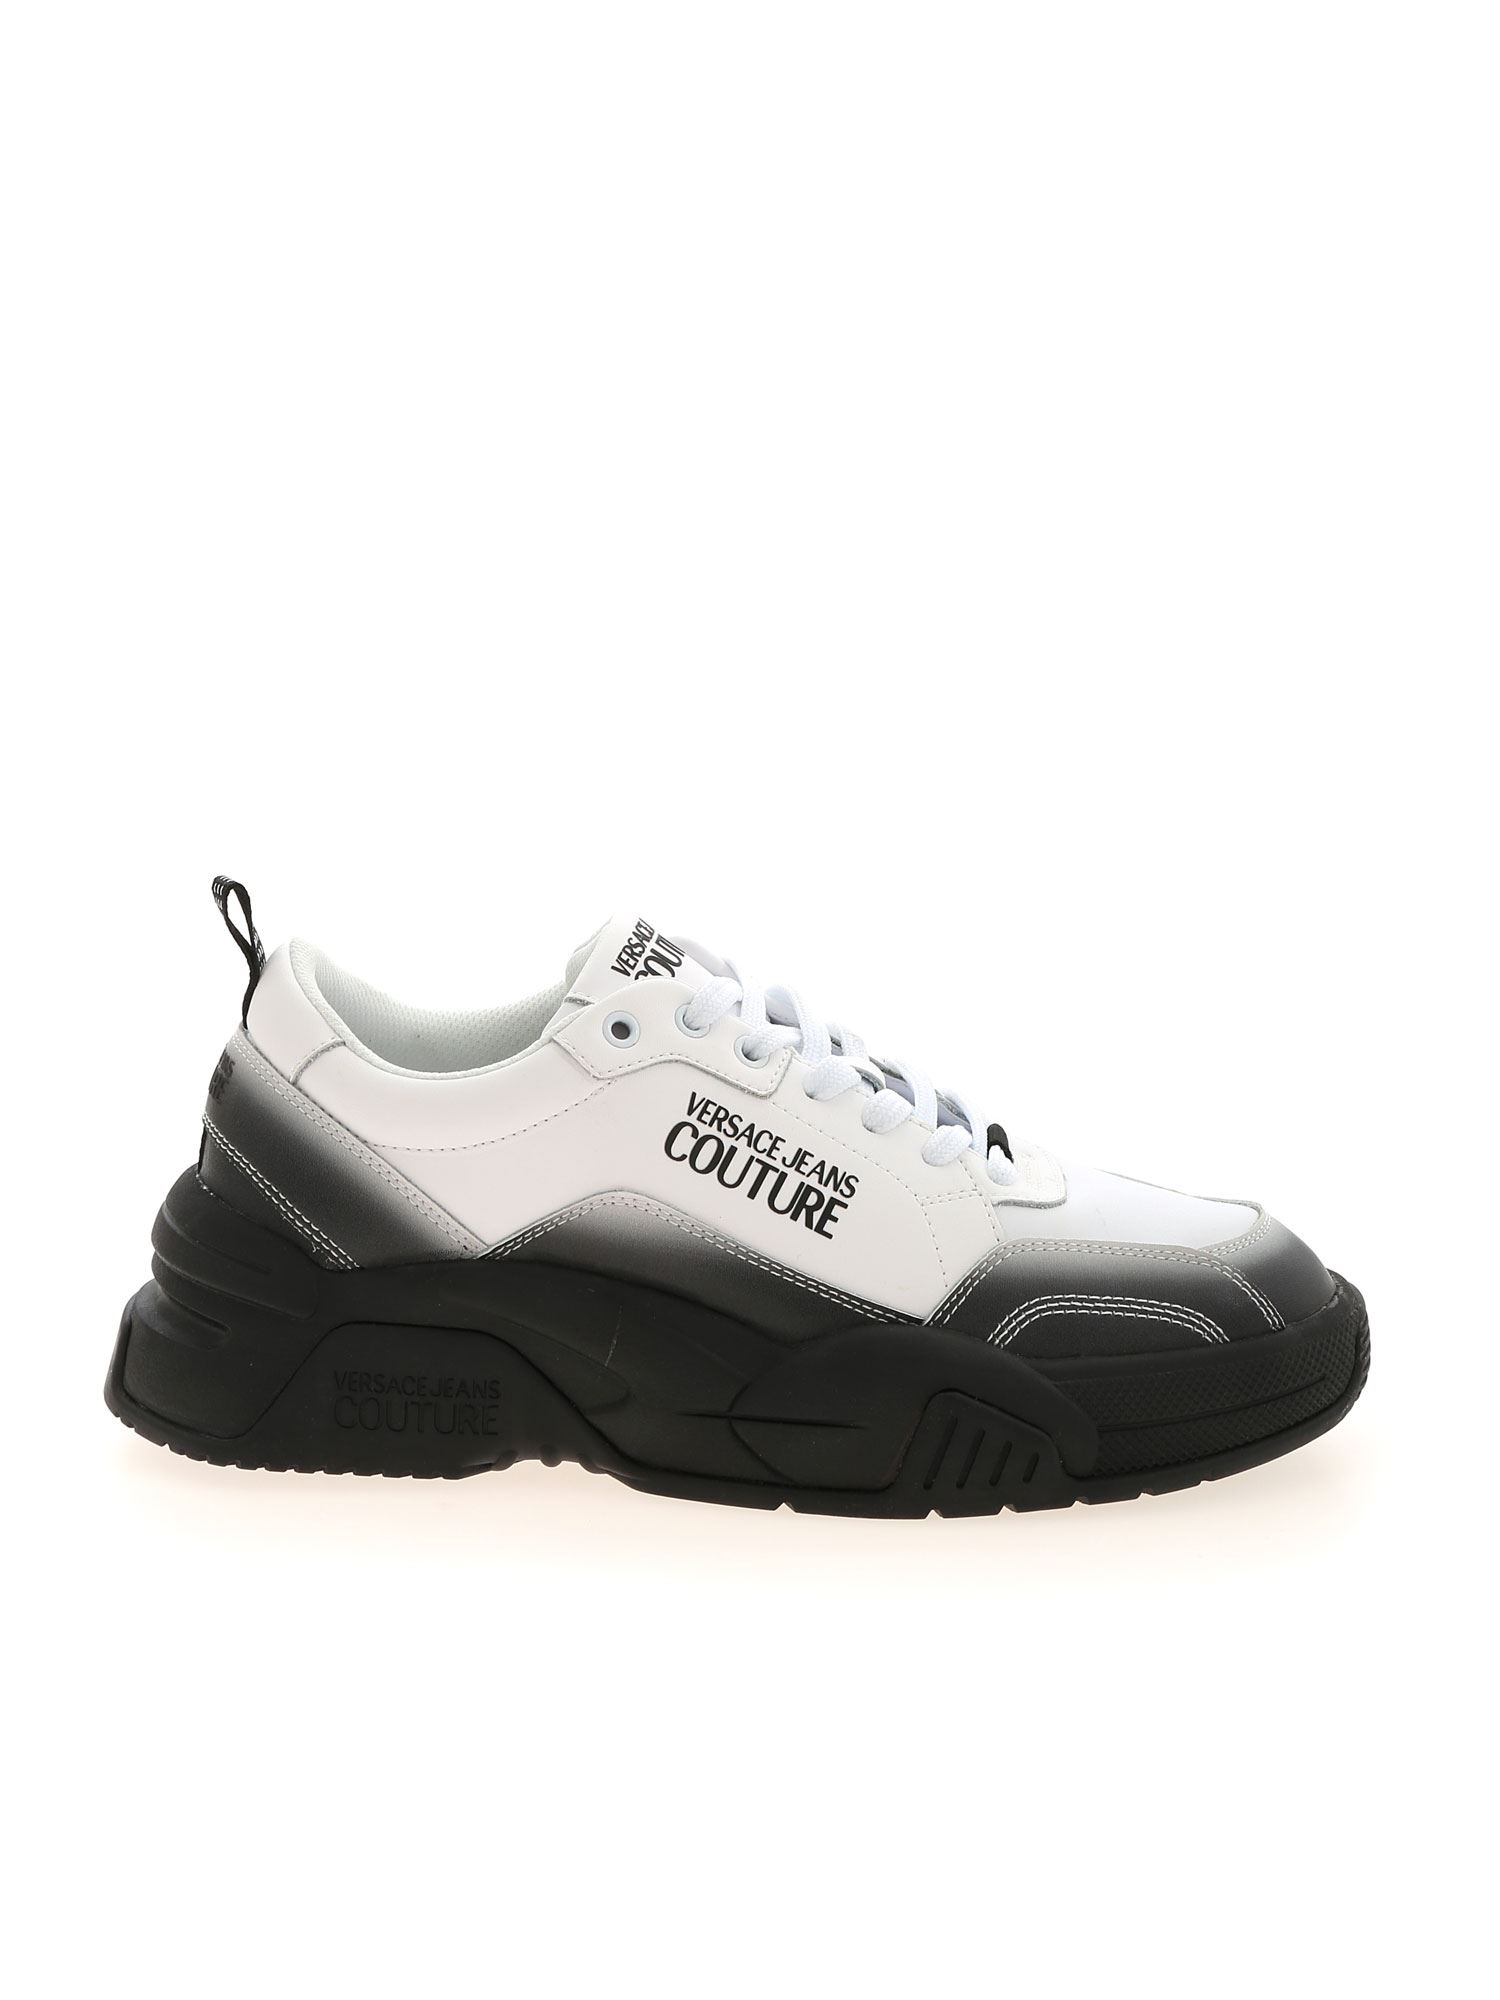 Versace Jeans Couture LOGO SNEAKERS IN BLACK AND WHITE